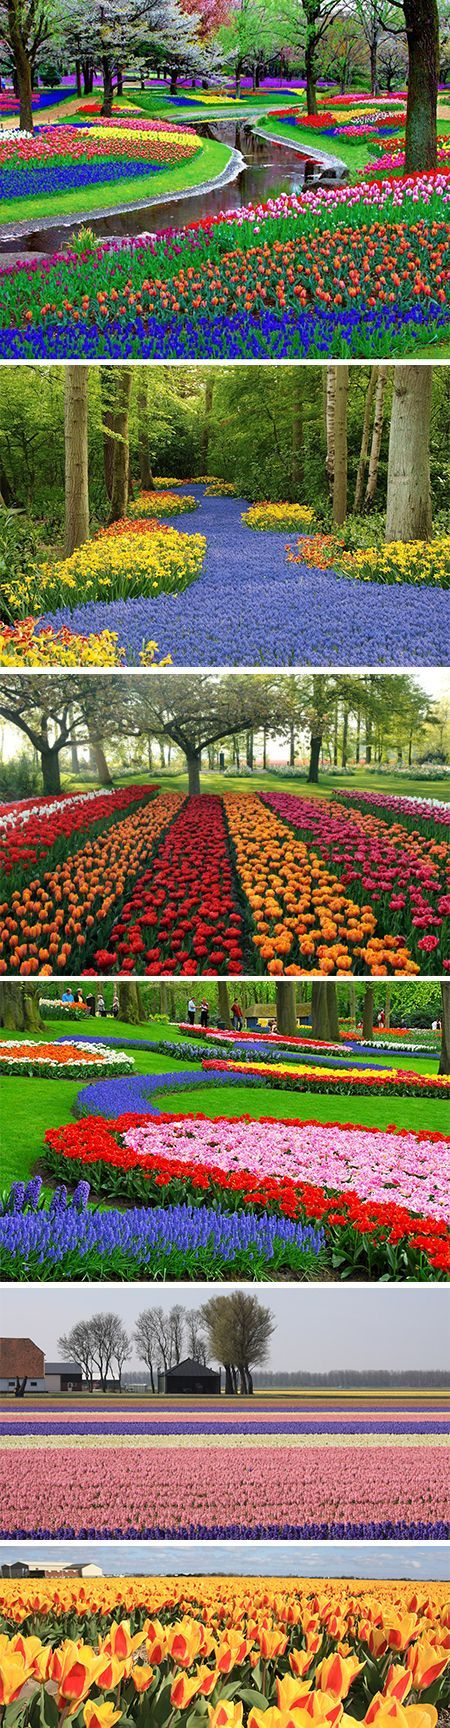 Travel Inspiration for The Netherlands - Keukenhof -largest flower garden in Europe-, Netherlands